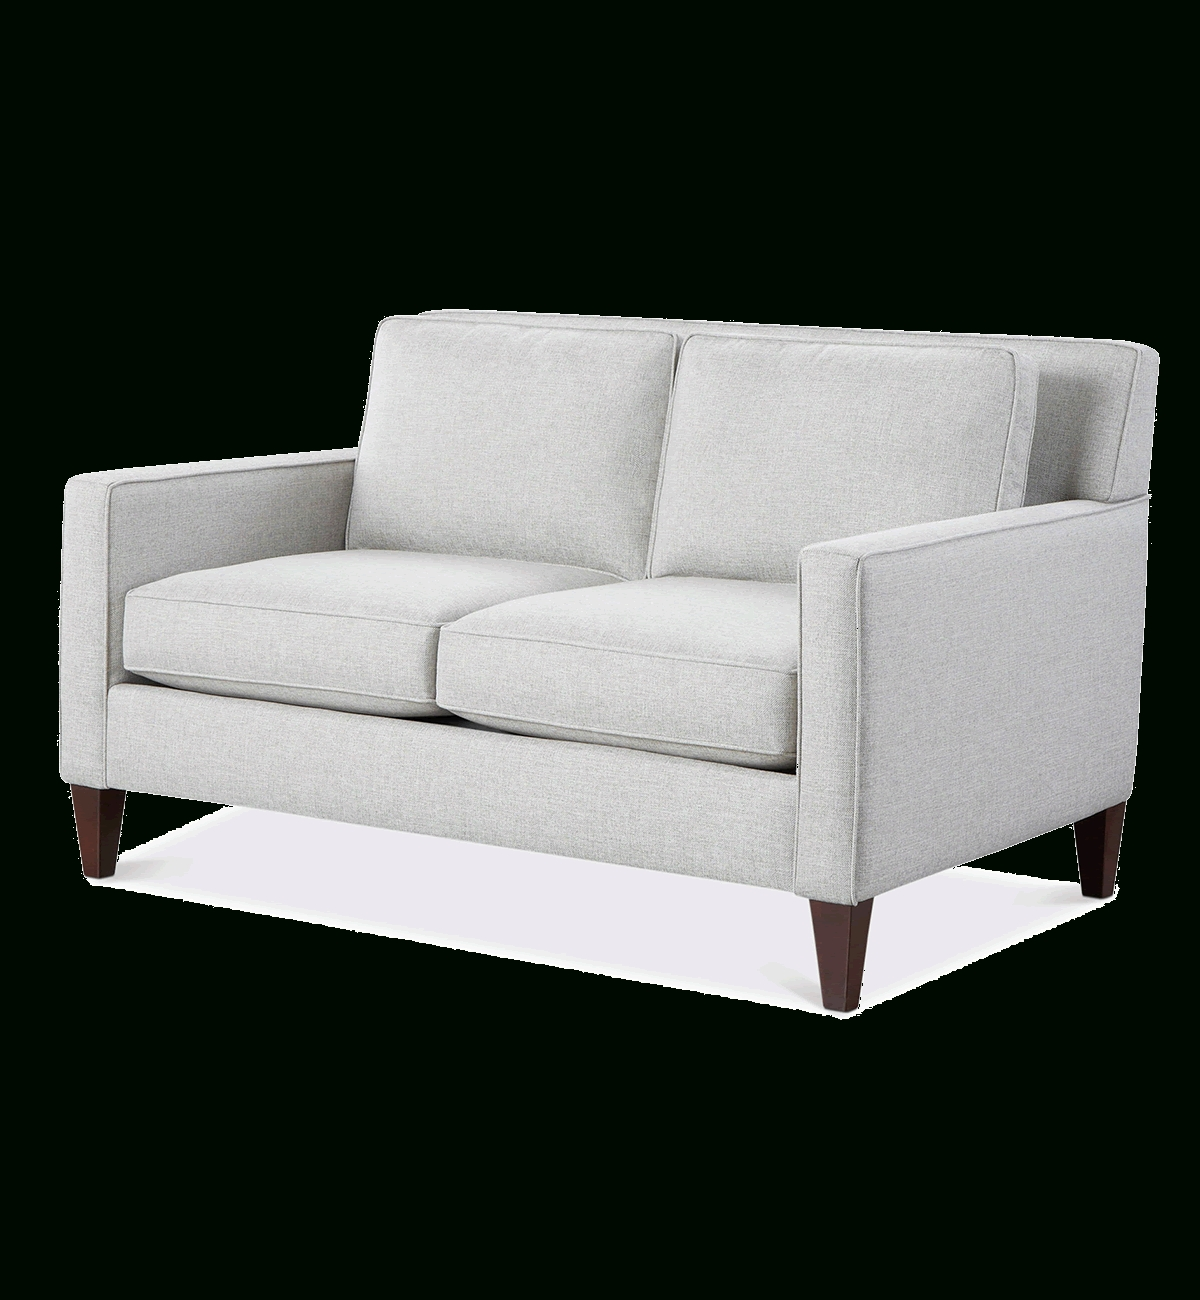 Current Fabric Sofas Within Fabric Couches And Sofas – Macy's (View 3 of 20)